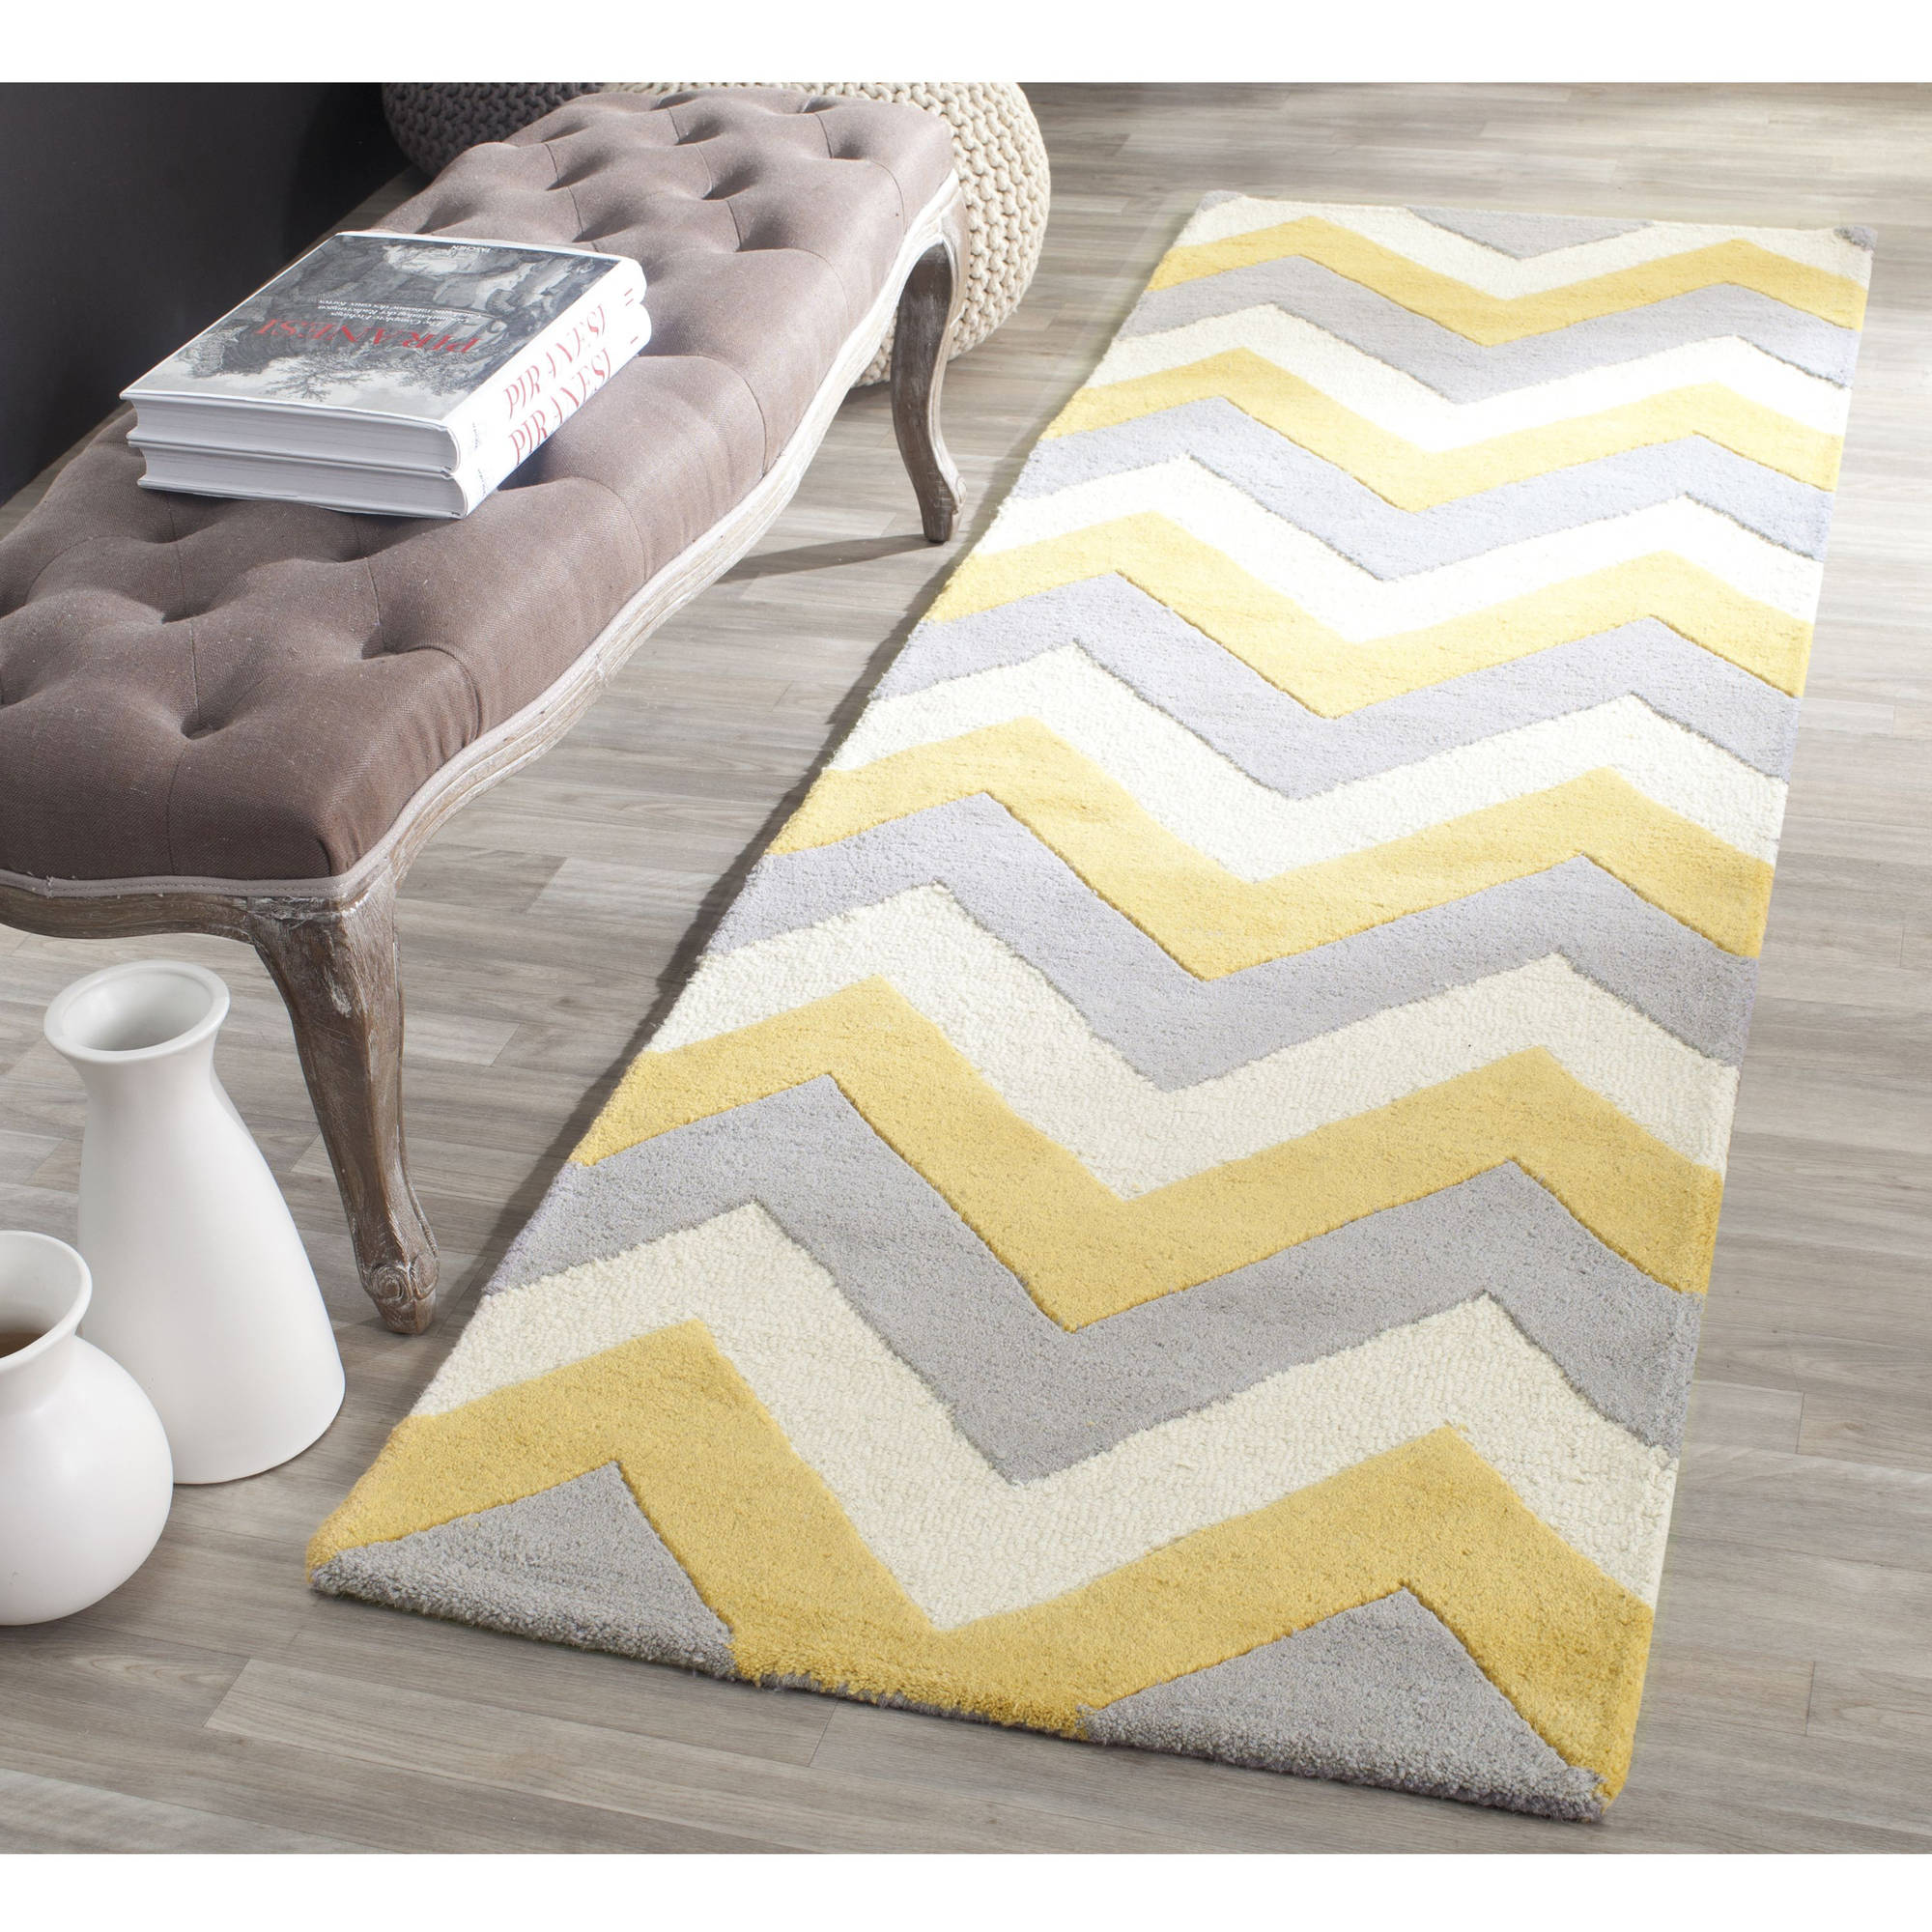 Safavieh Cambridge Cherette Zig Zag Stripes Area Rug or Runner